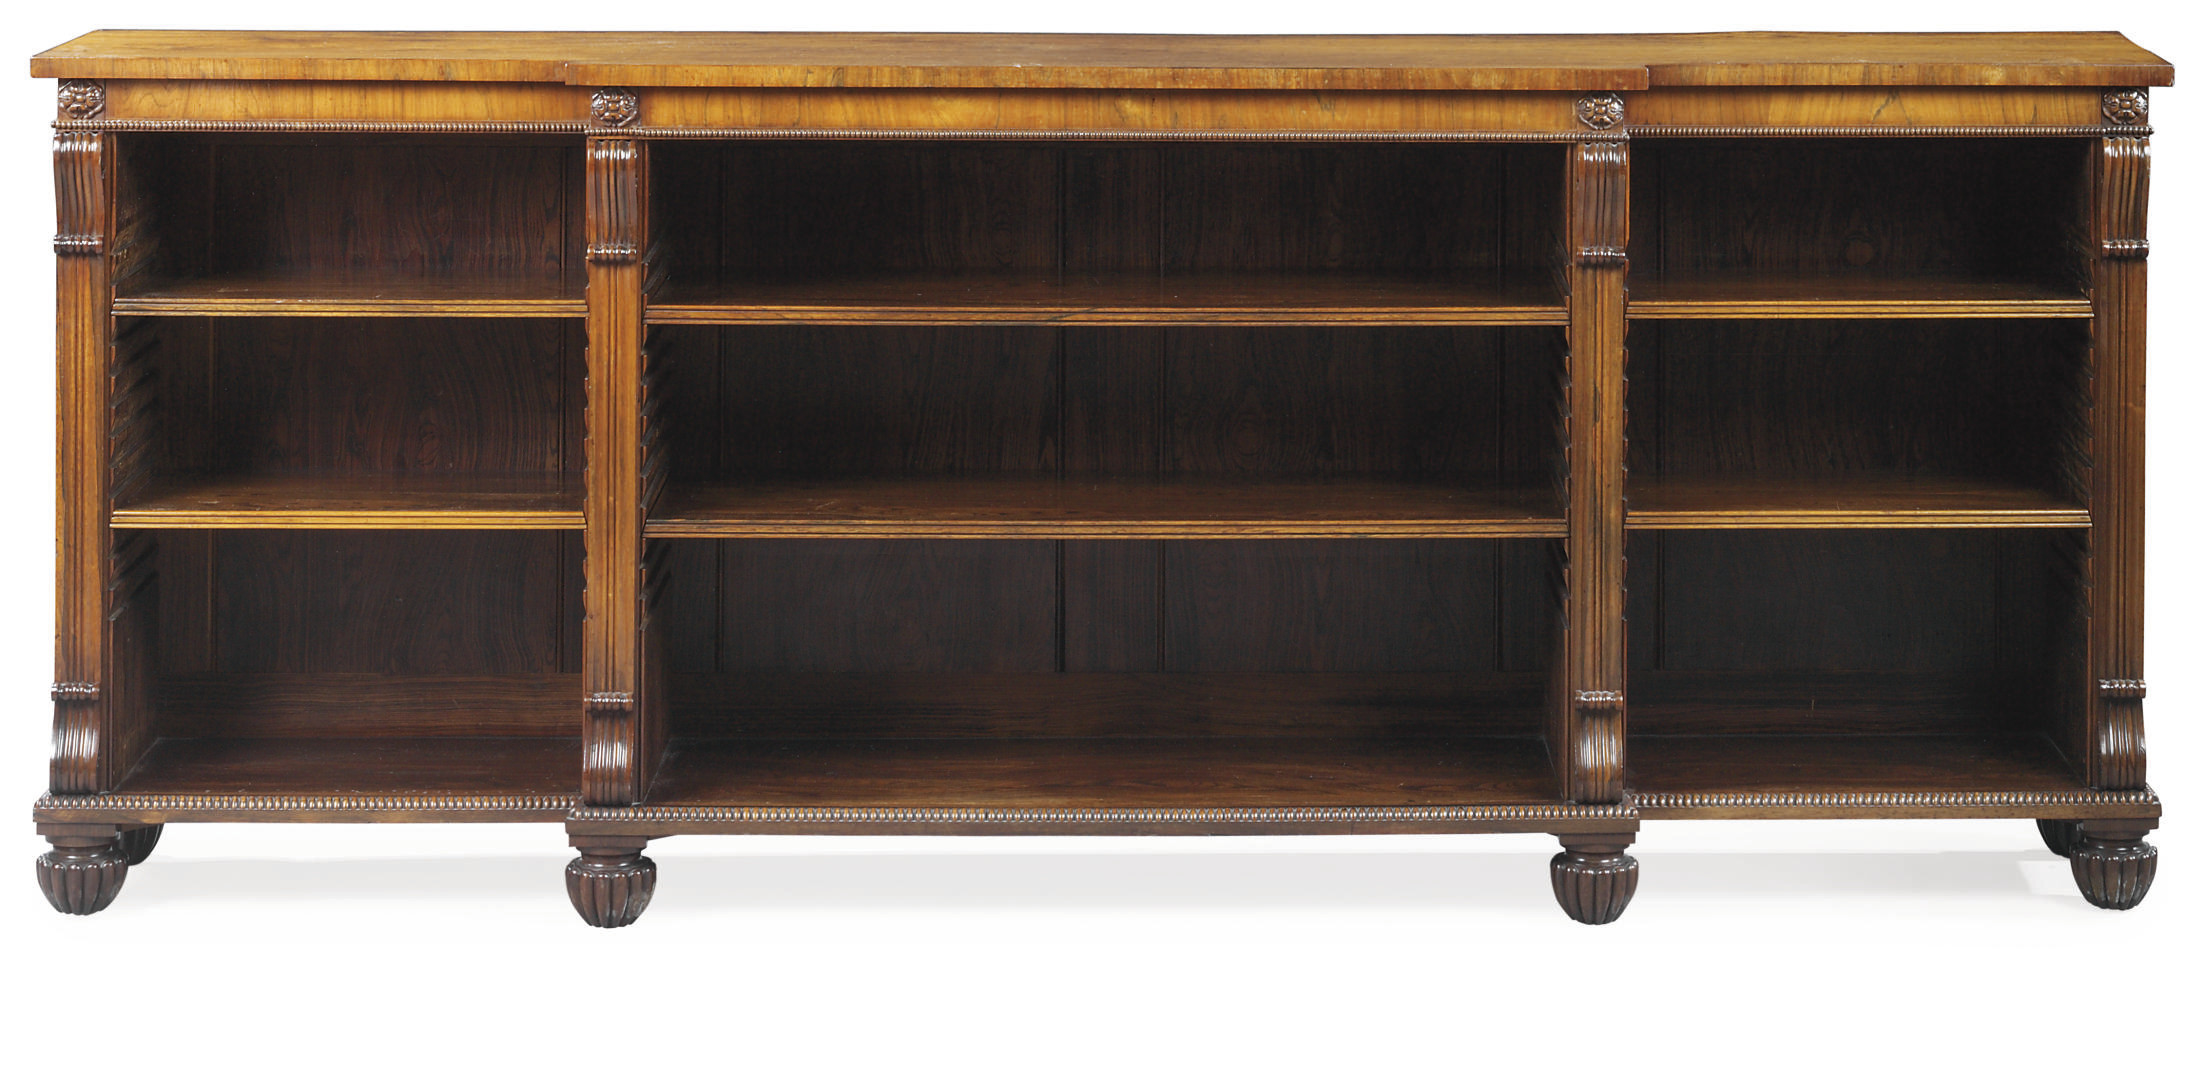 A REGENCY ROSEWOOD BREAKFRONT BOOKCASE